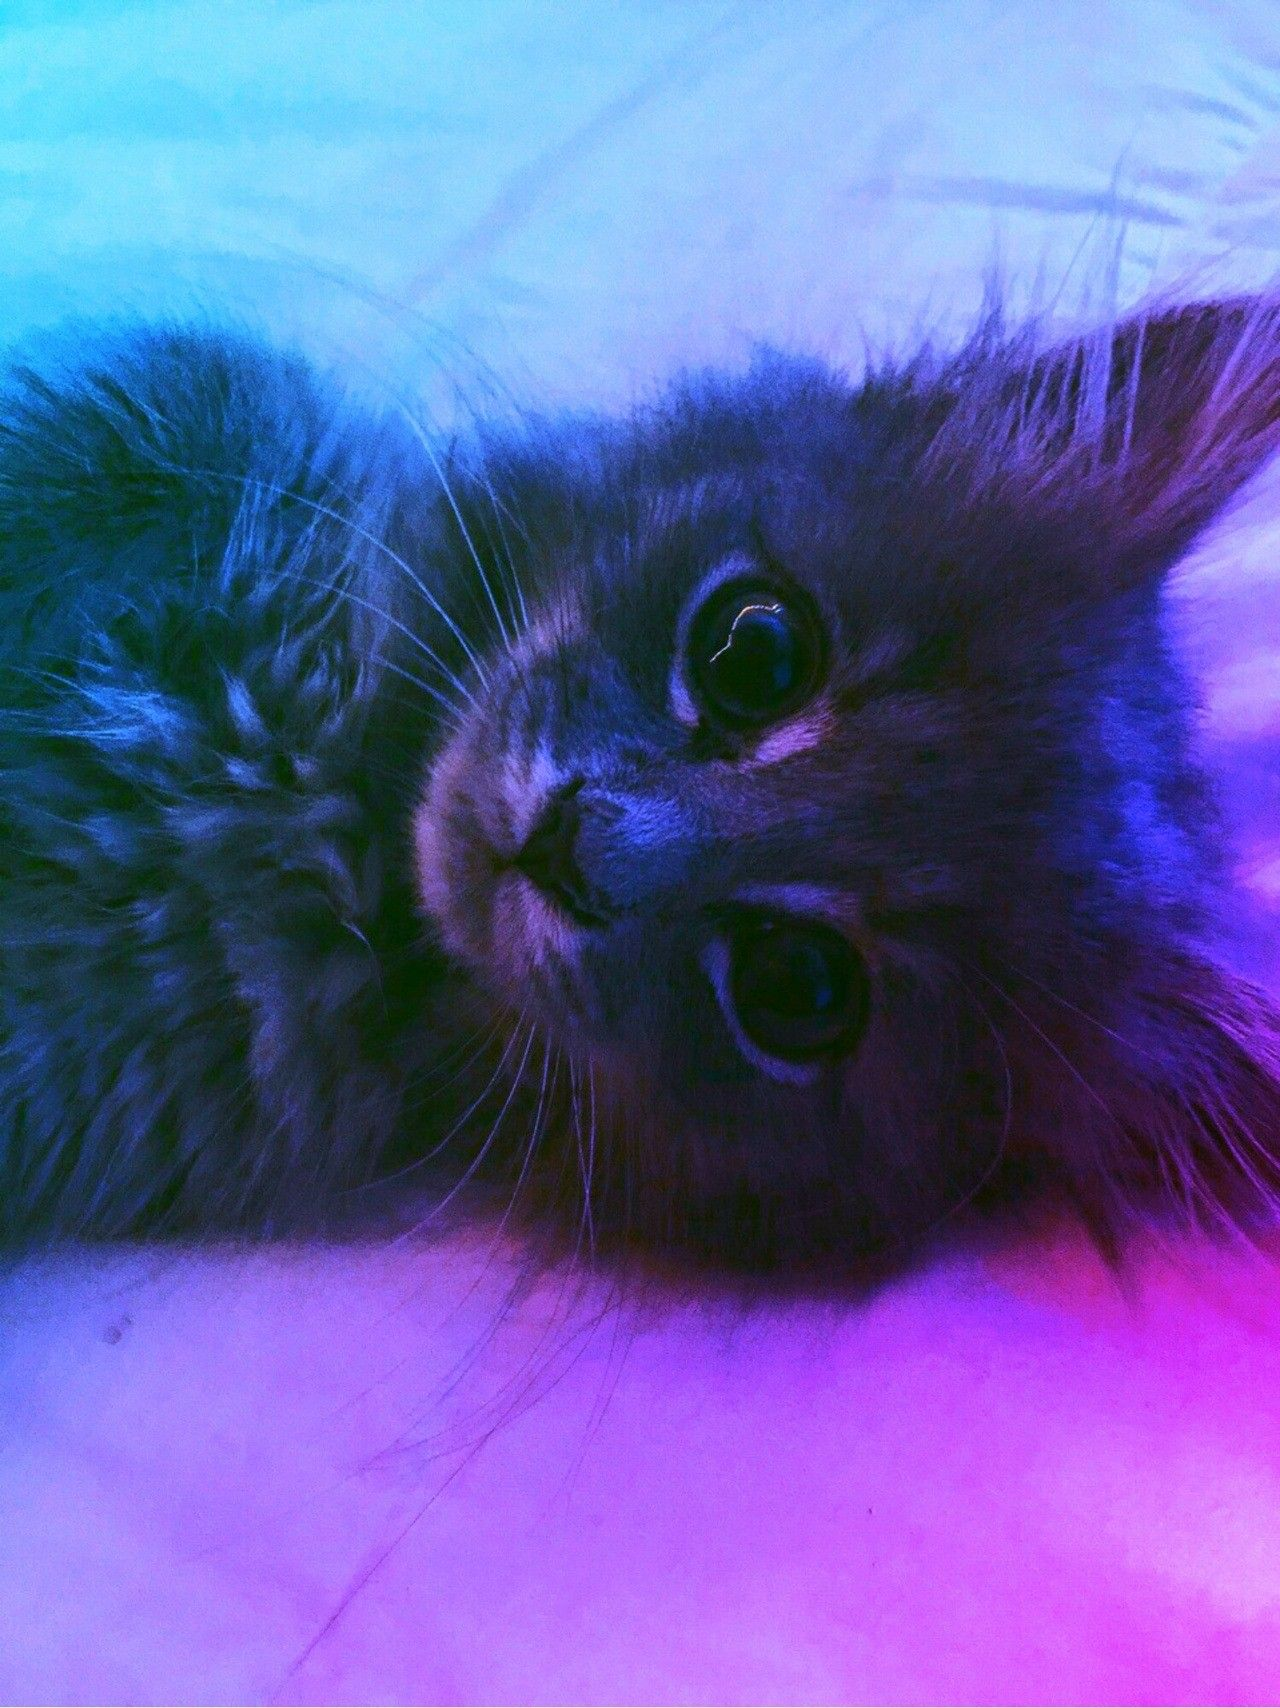 Pin by Jason Buckley on Animals Cat aesthetic, Crazy